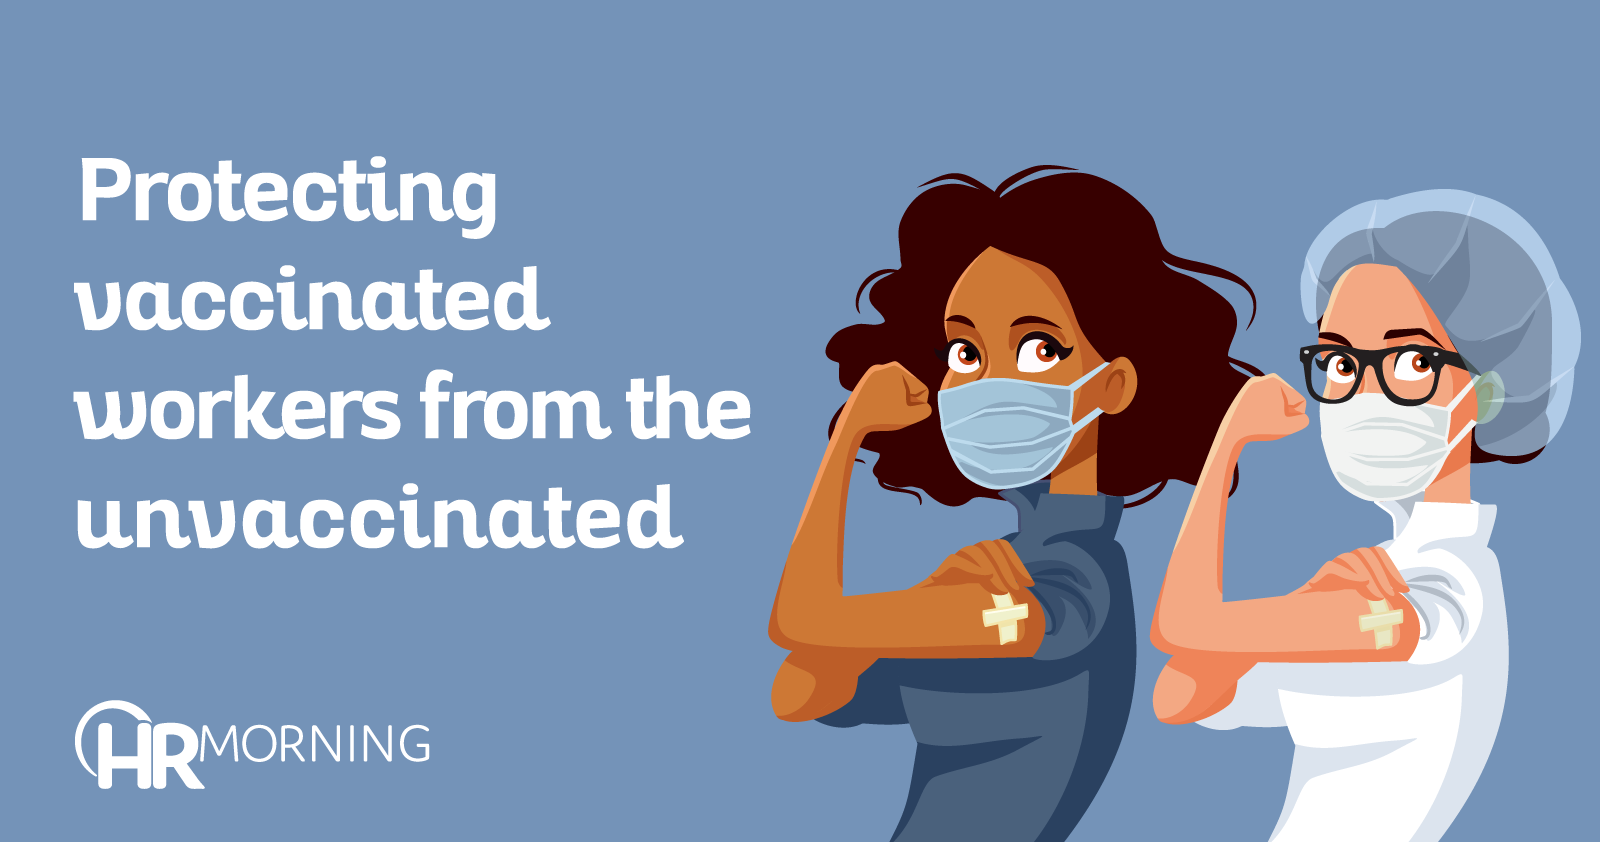 protecting vaccinated workers from the unvaccinated